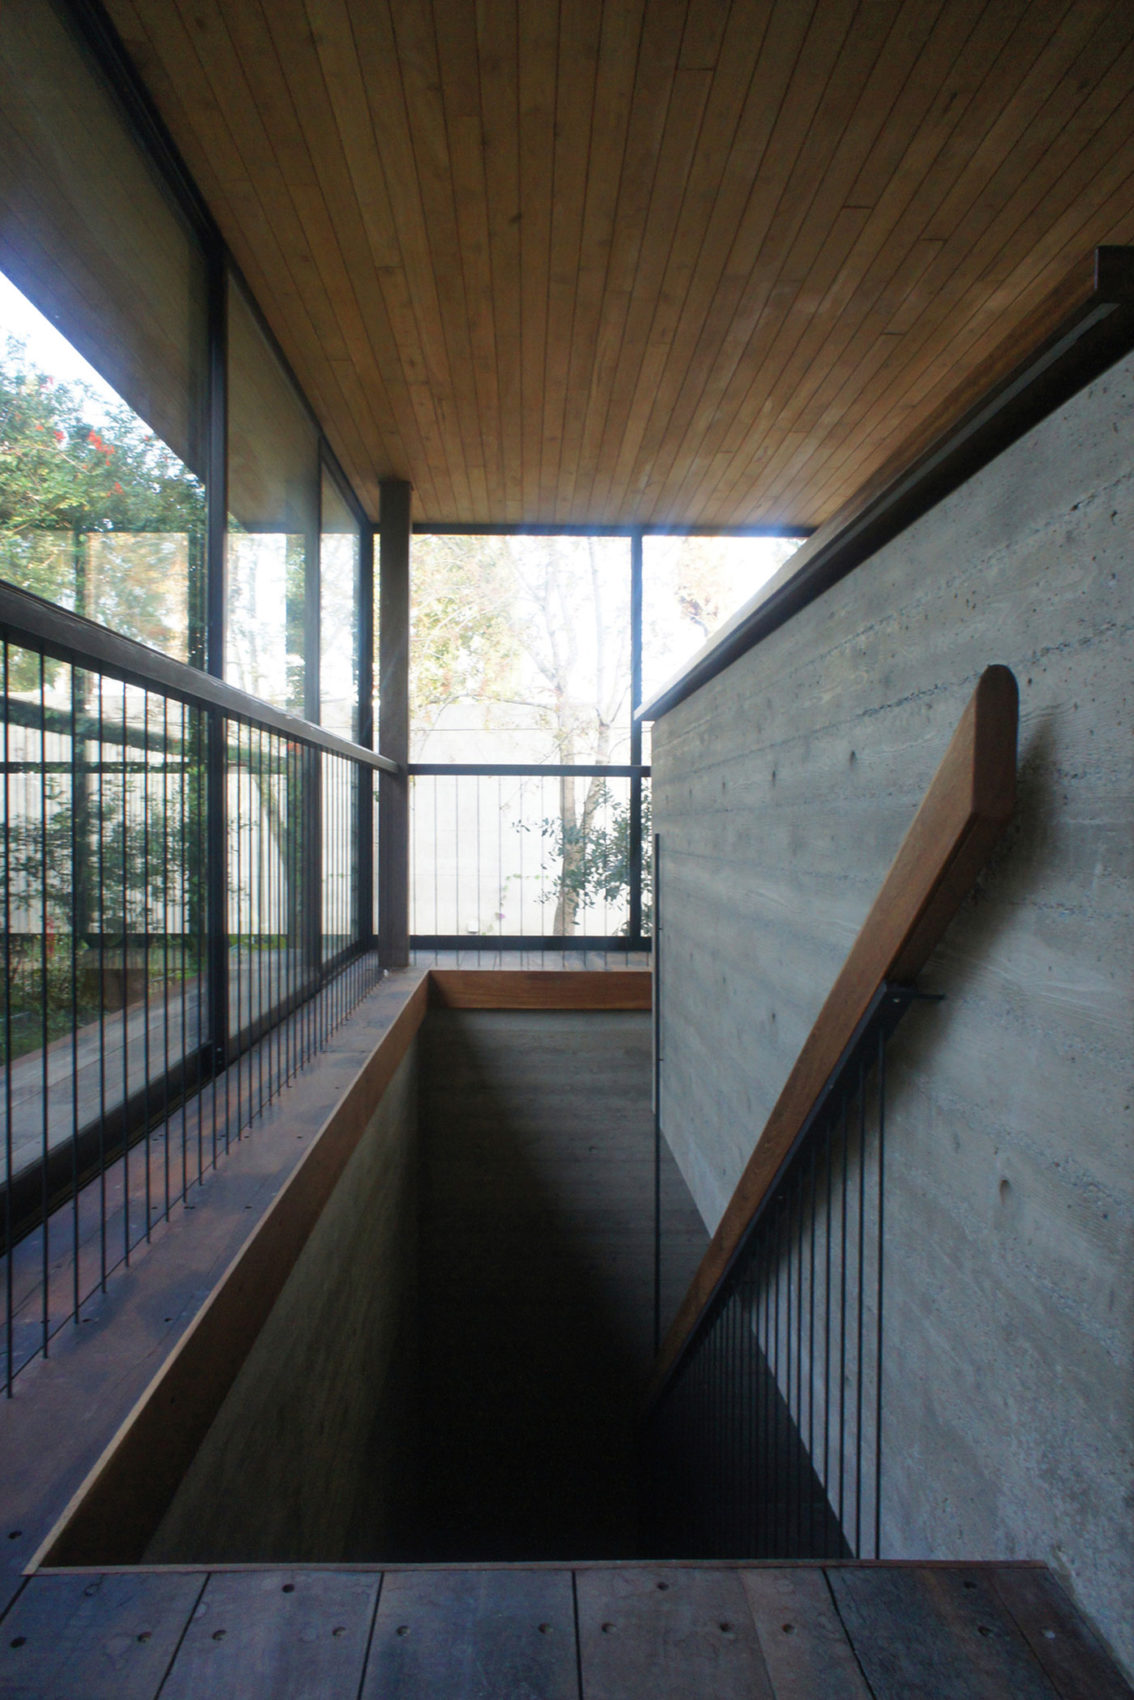 Pavilion at Arch's Residence by Kythreotis Arch (14)